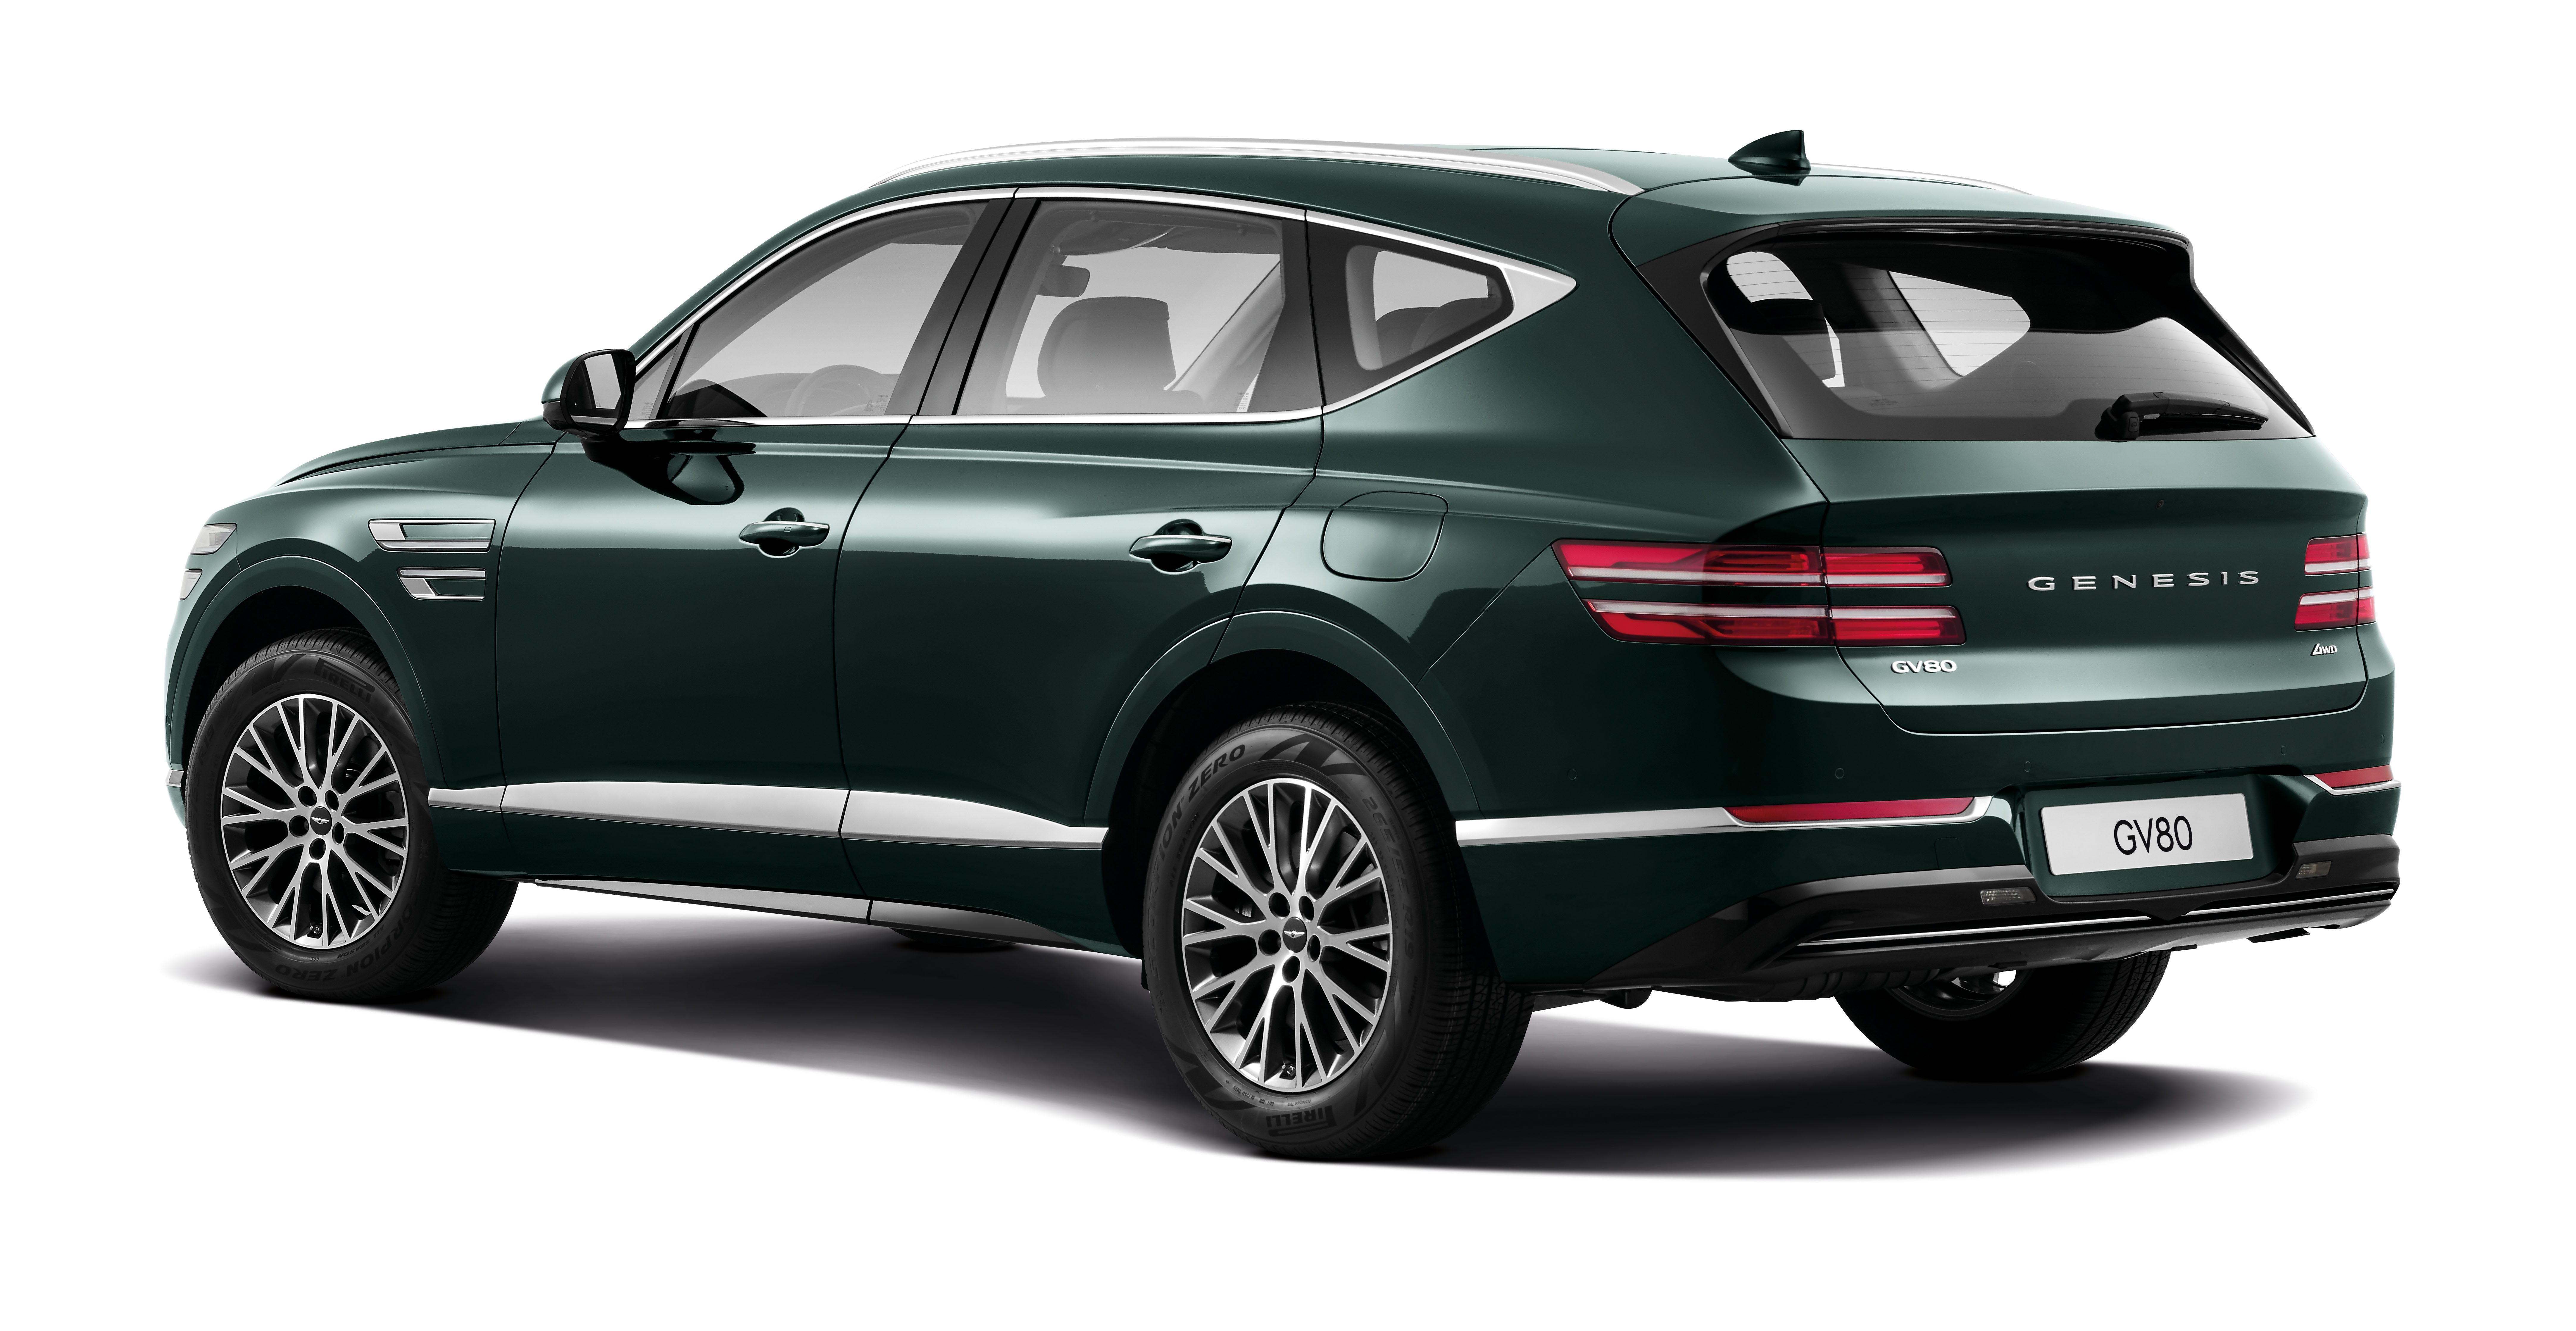 2021 Genesis Gv80 Luxury Suv Can Learn Your Driving Style And Mimic It